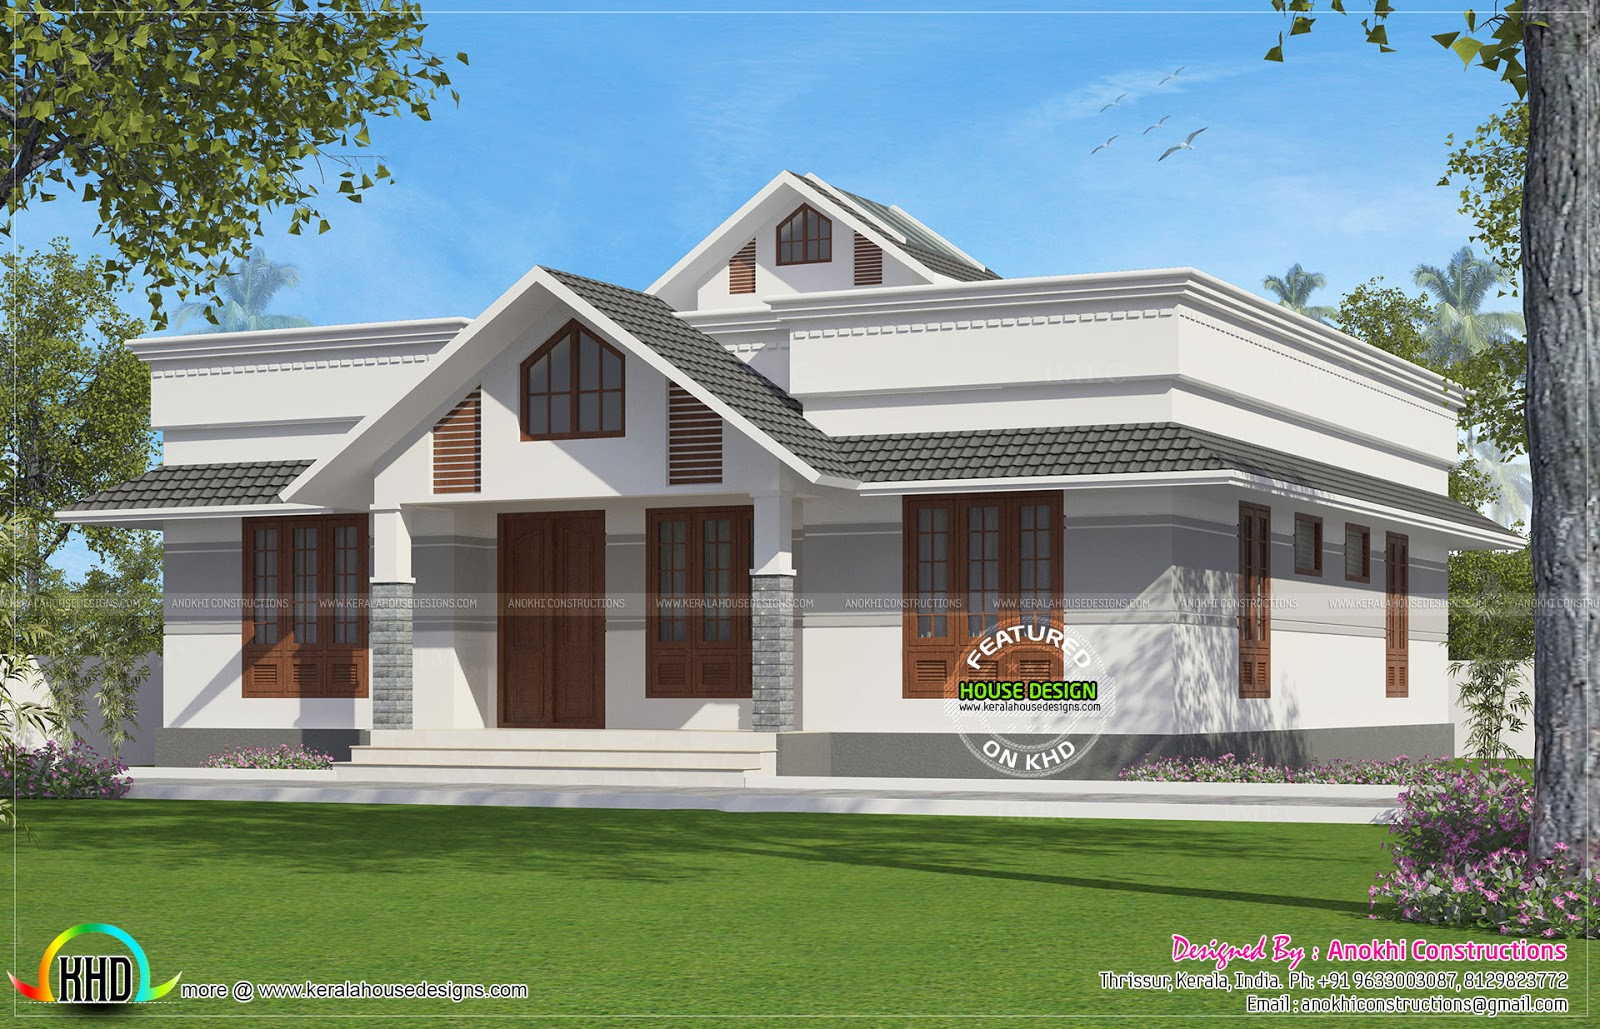 1330 square feet small house plan kerala home design and for Free house plans and designs with cost to build